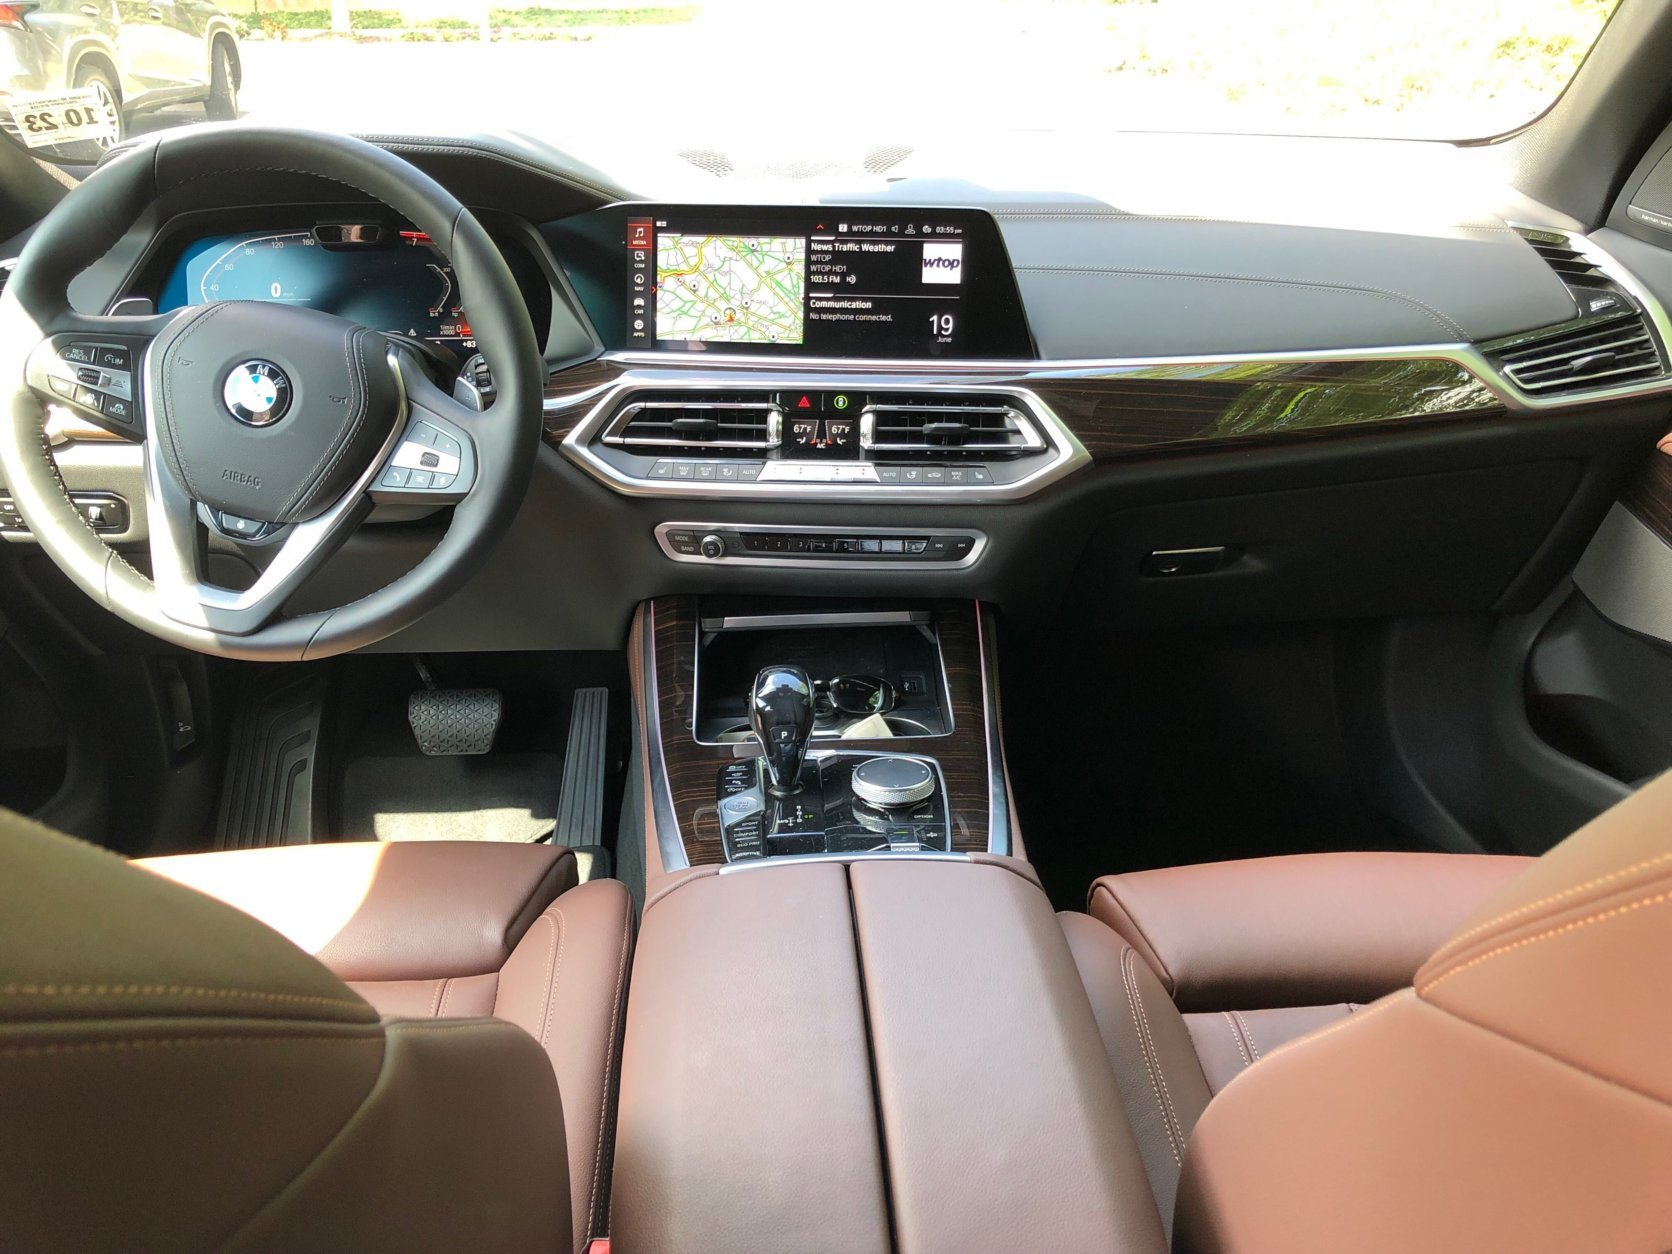 <p>The X5 is now more hushed on the road and handles bumps better. The turbo 6-cylinder has plenty of punch. Like the Buick, the interior materials also seem nicer than before.</p>